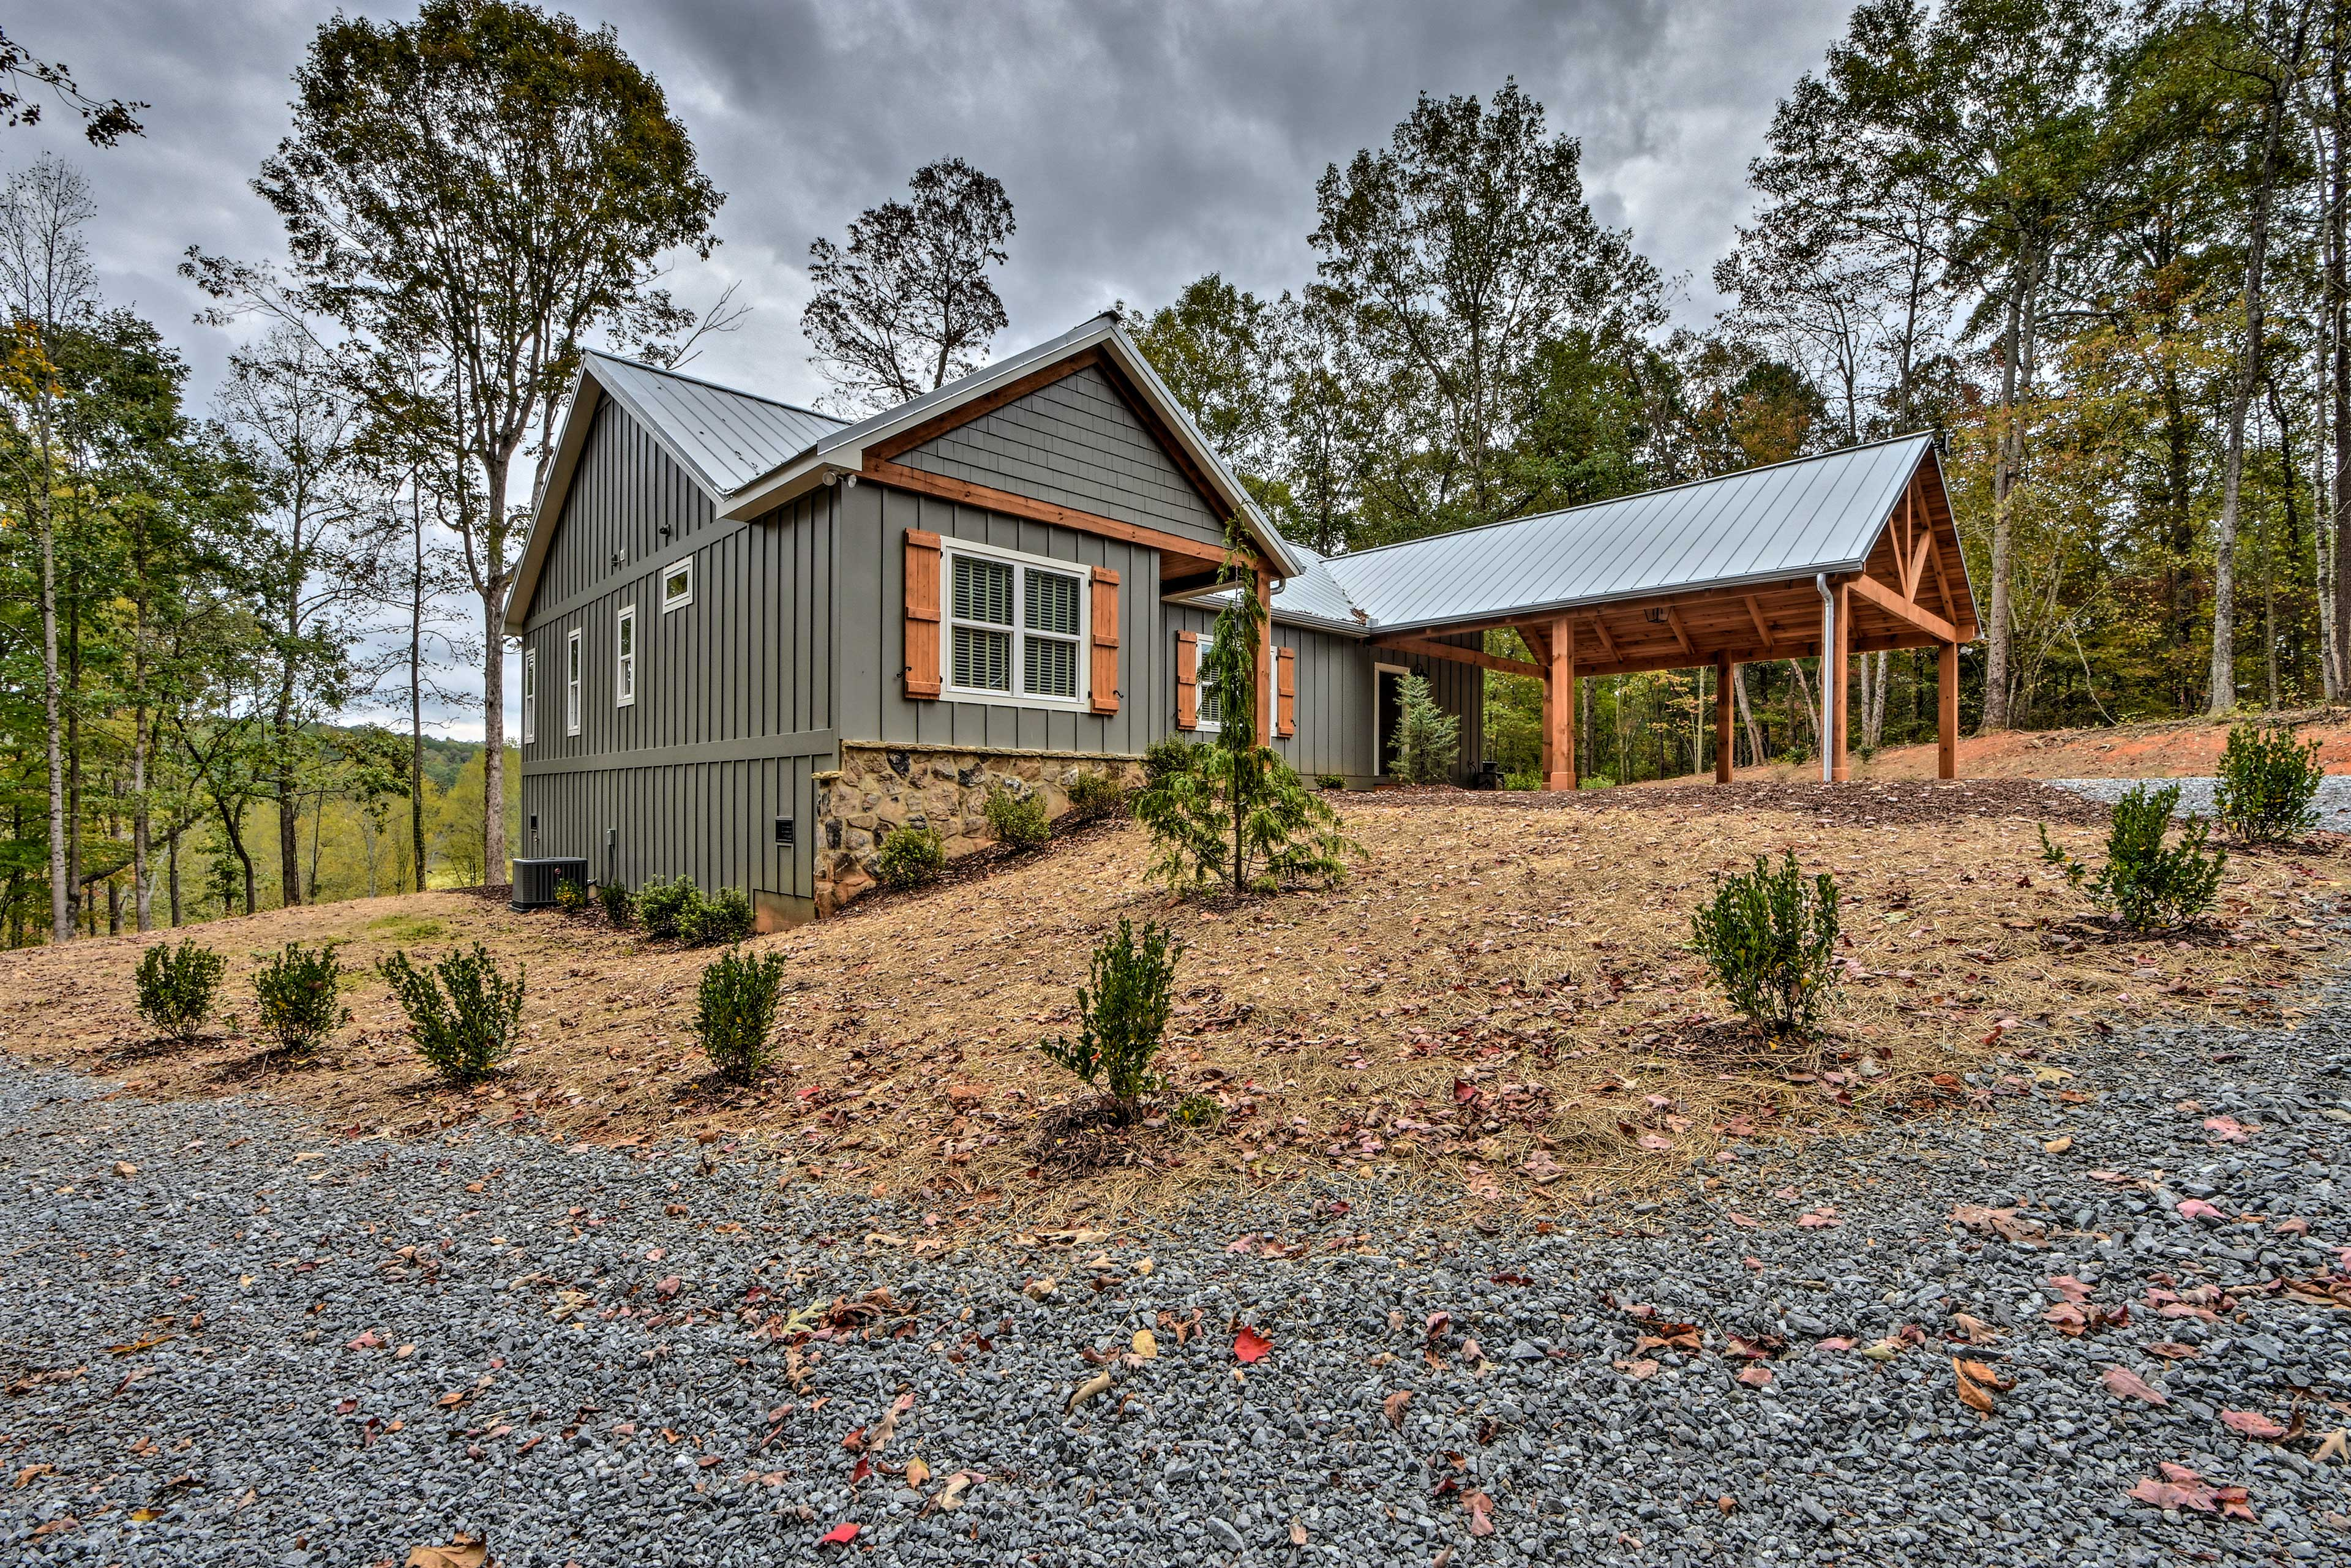 The home sits on 3.5 lush acres.